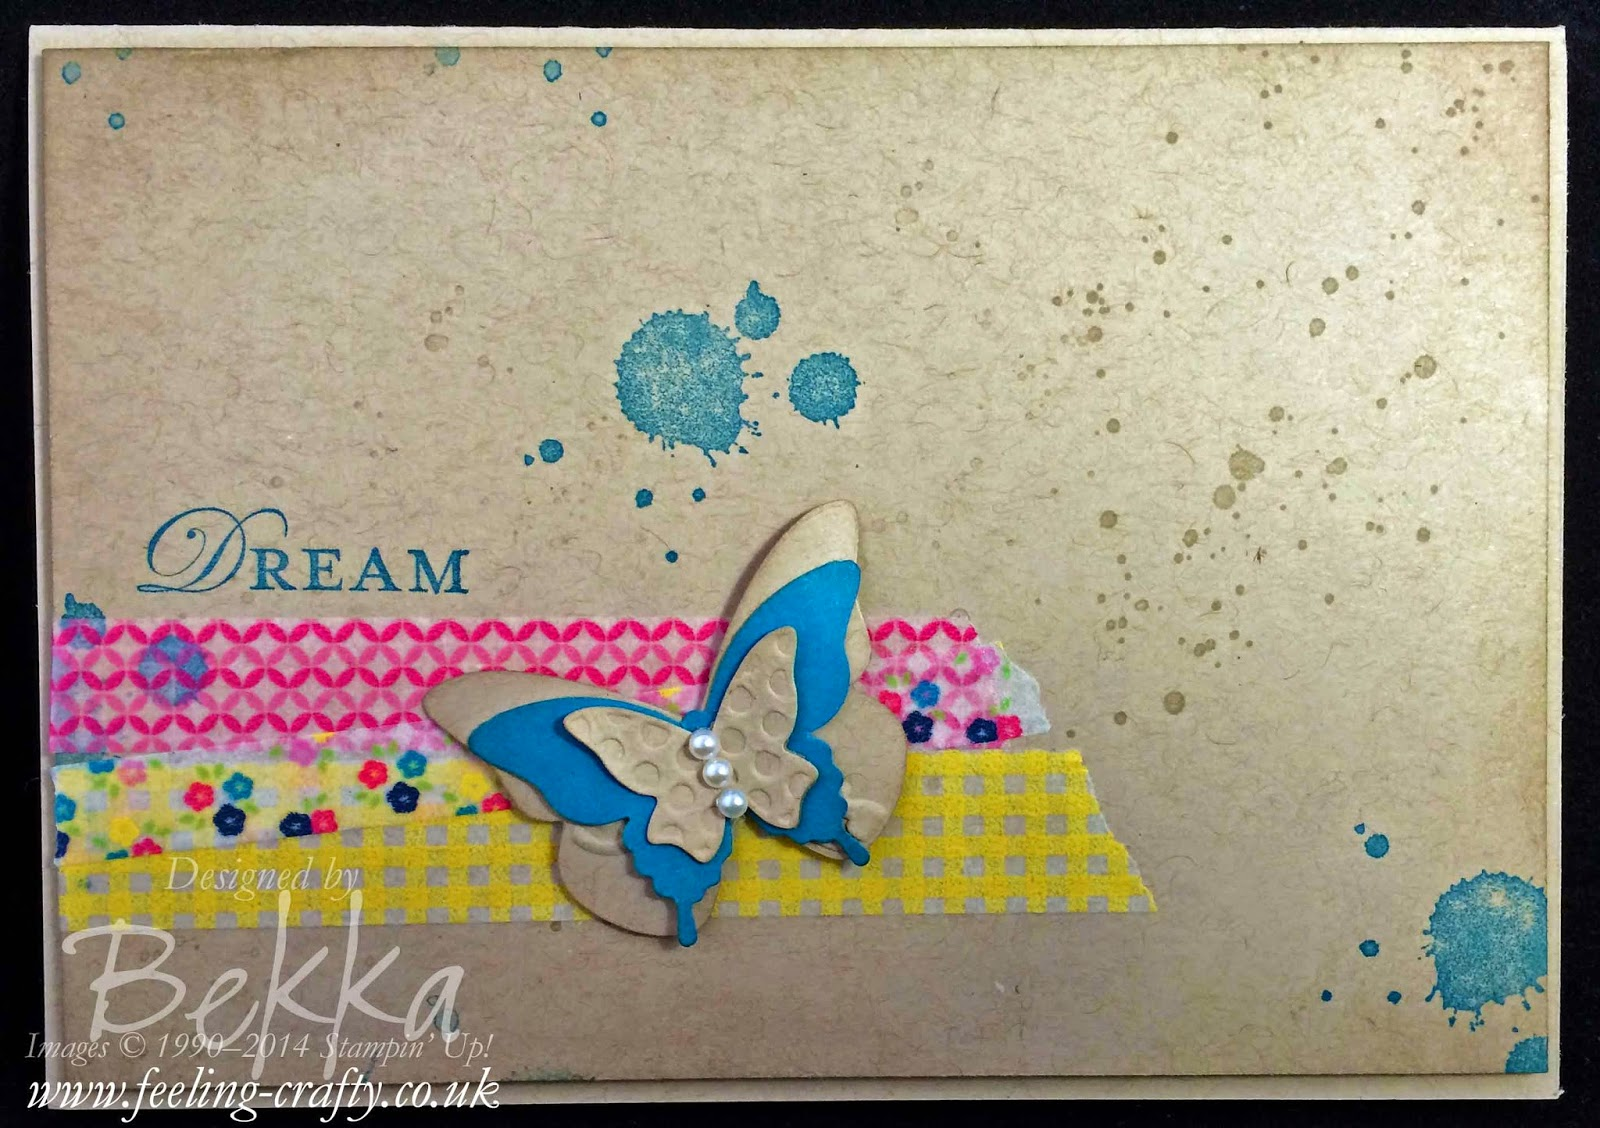 Loving Thoughts and Gingham Garden Dream Card by Bekka - check out her blog for lots of great Stampin' Up! projects from the UK